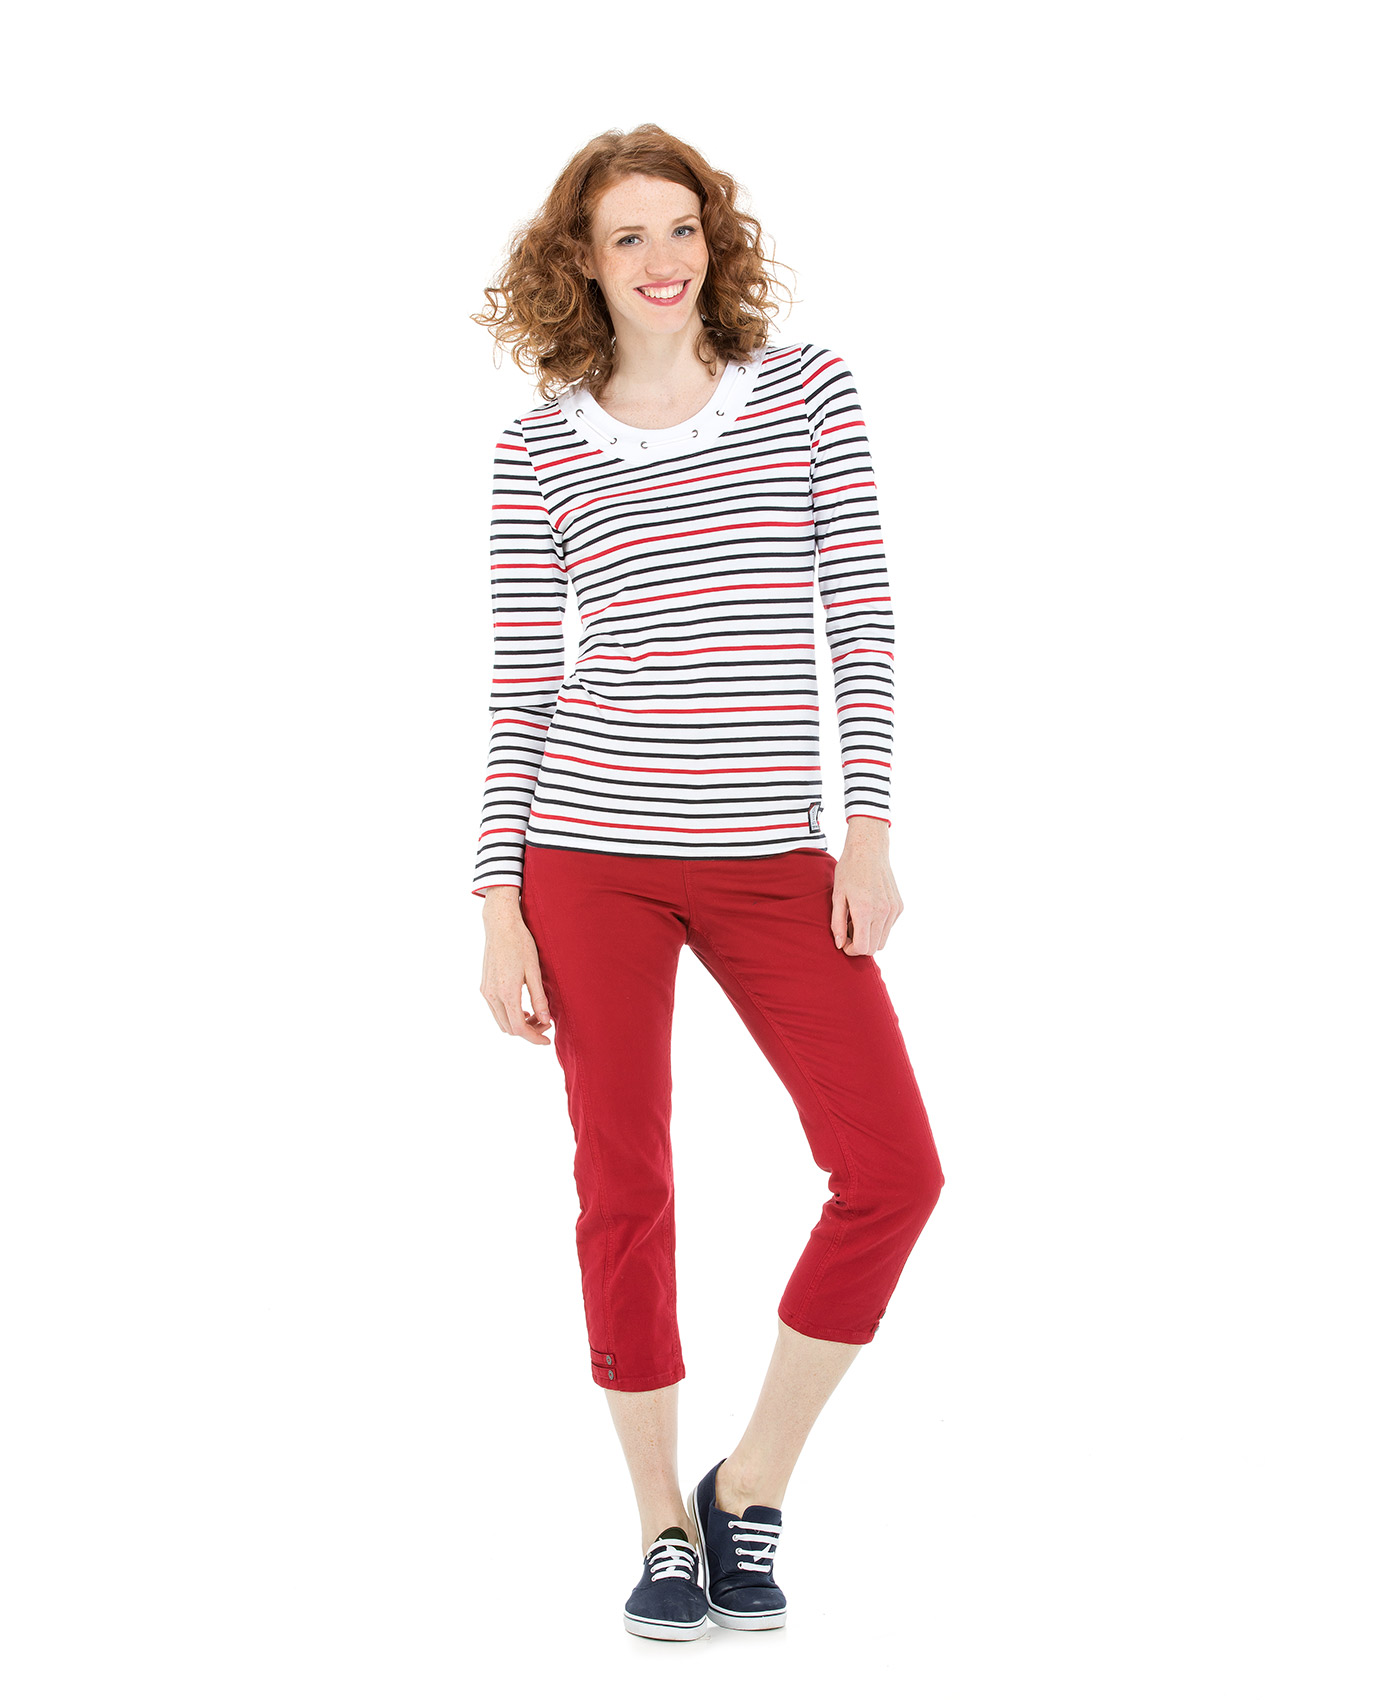 Tee-shirt manches longues femme rayé_1